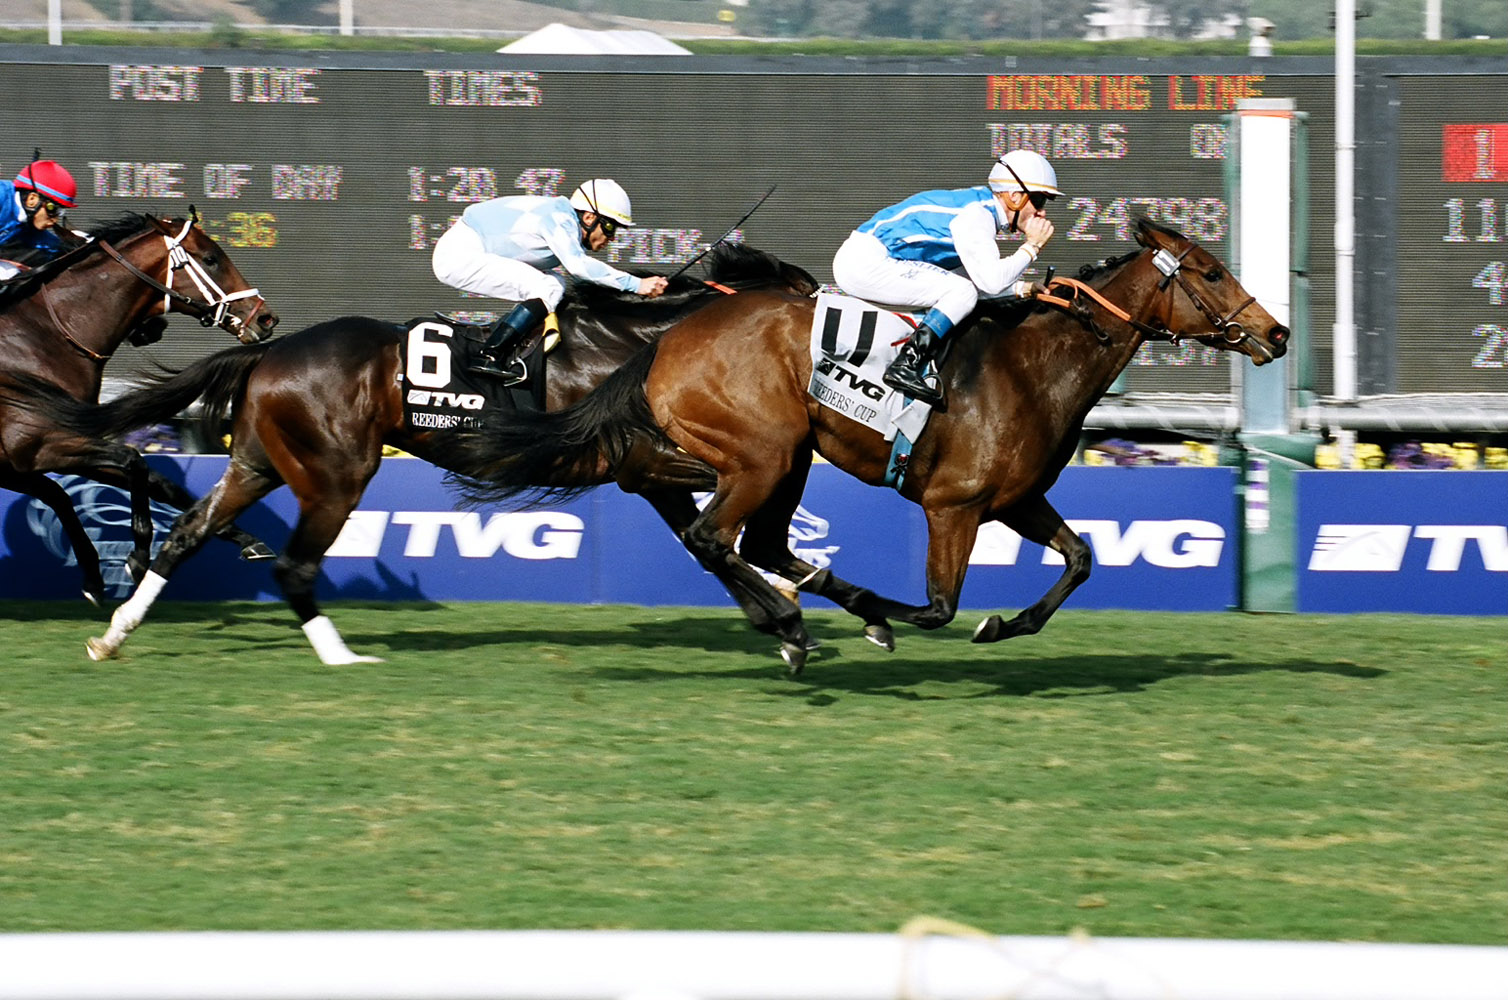 Goldikova (Olivier Peslier up) winning her second Breeders' Cup Mile at Oak Tree at Santa Anita in November 2009 (Bill Mochon/Museum Collection)